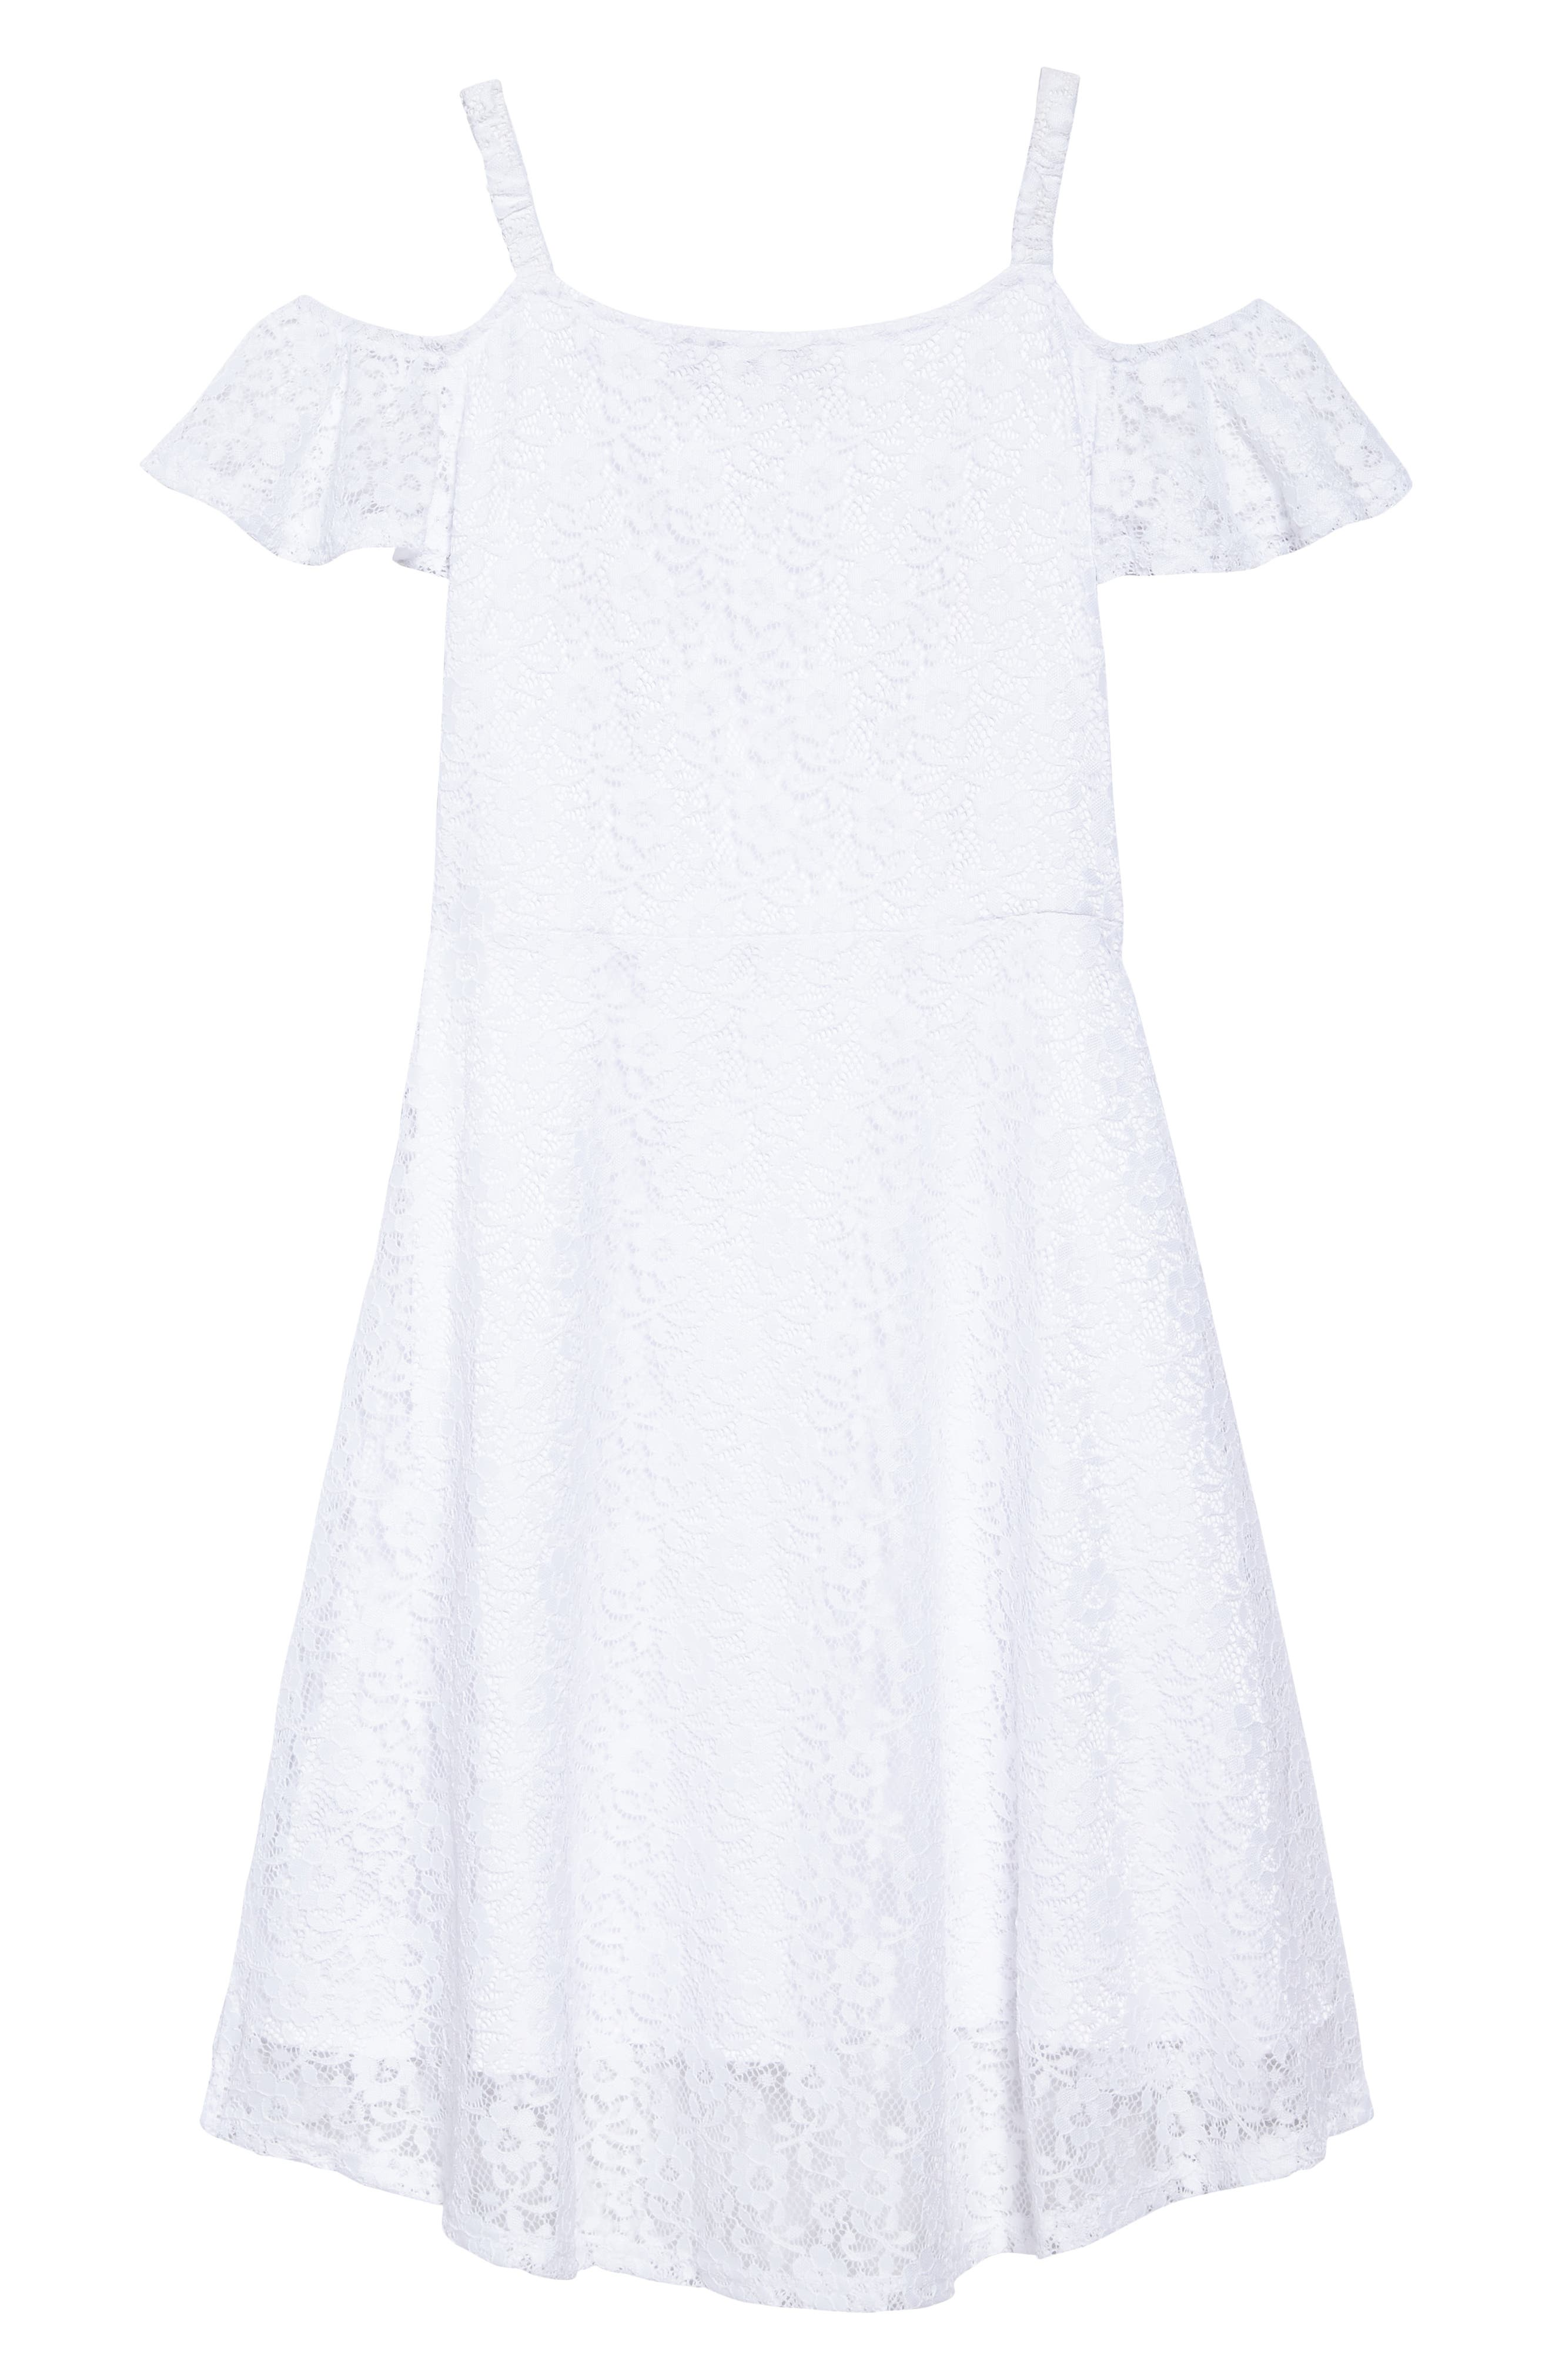 Alternate Image 2  - Marciano Embroidered Lace Cold Shoulder Dress (Big Girls)